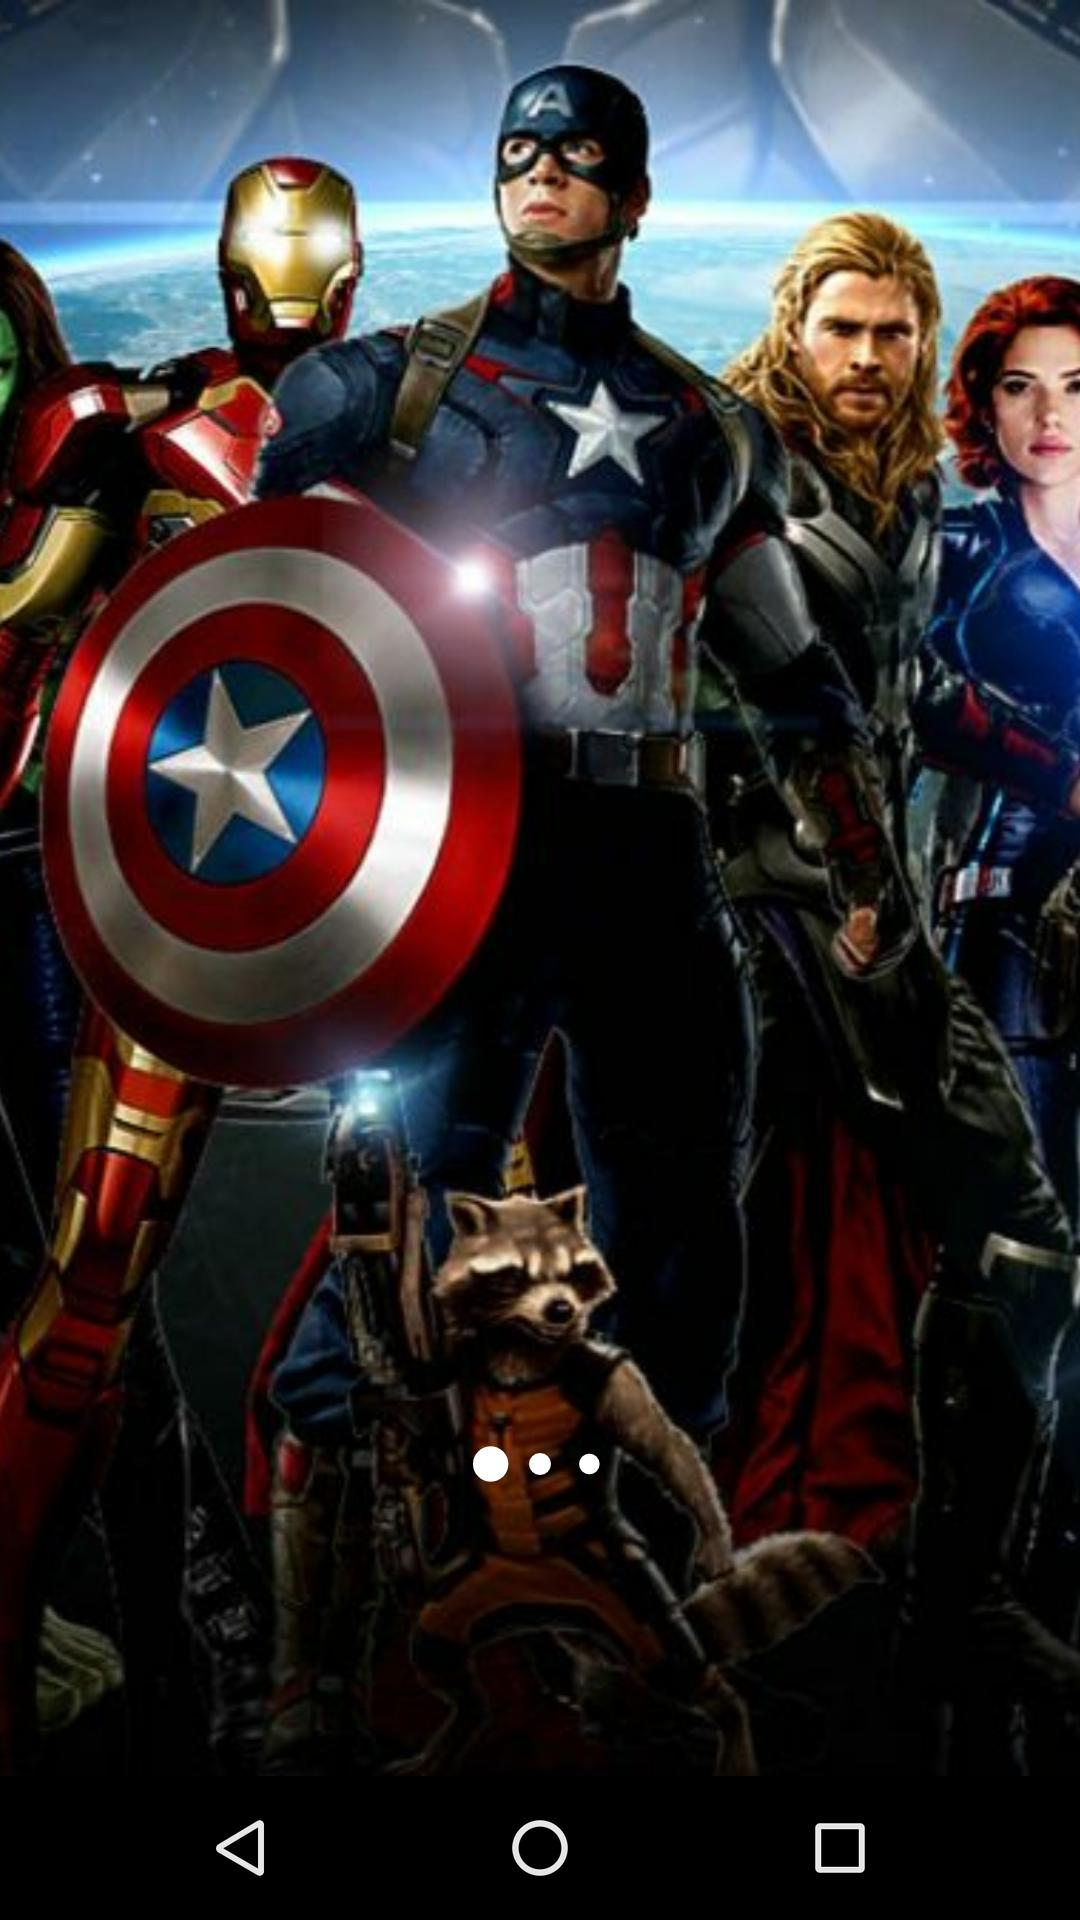 Unduh 5000 Wallpaper Avengers Photo